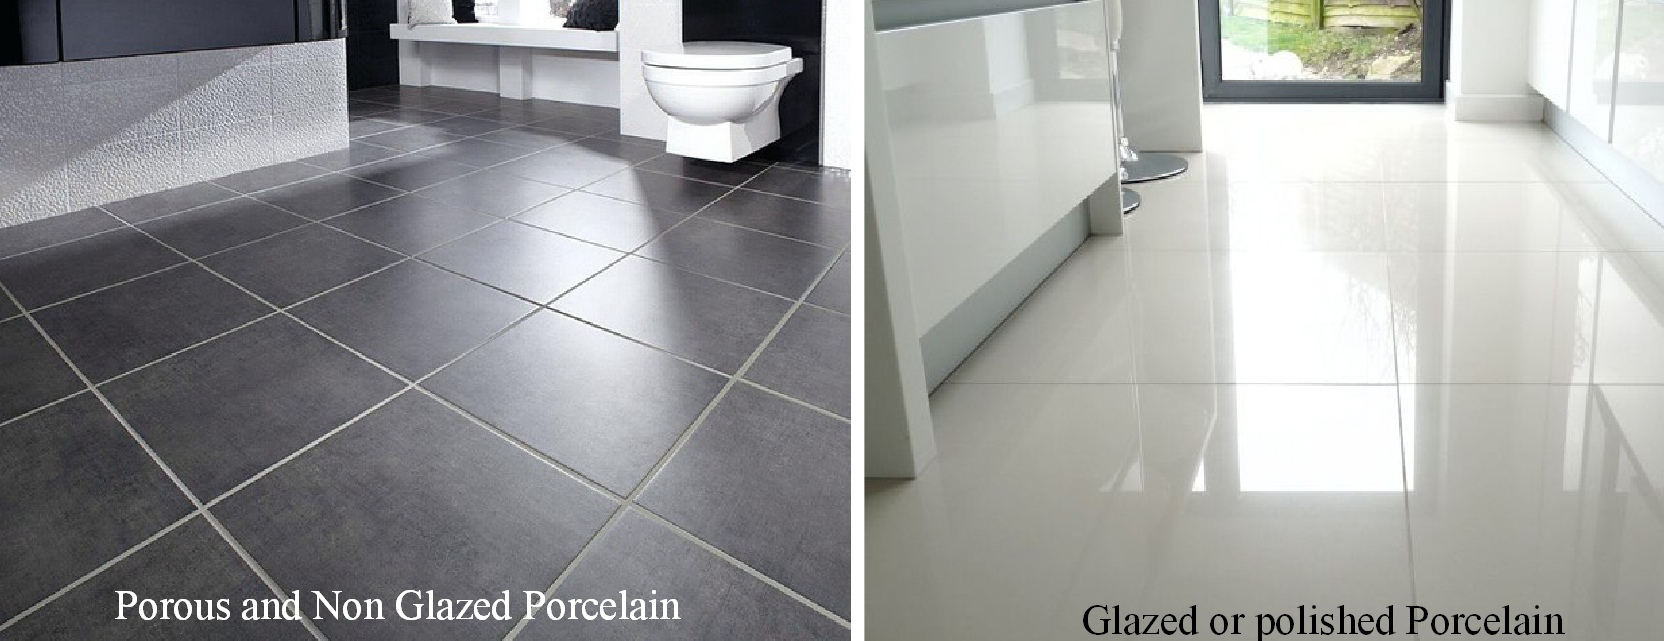 Porcelain Floor tile cleaning in Cheshire